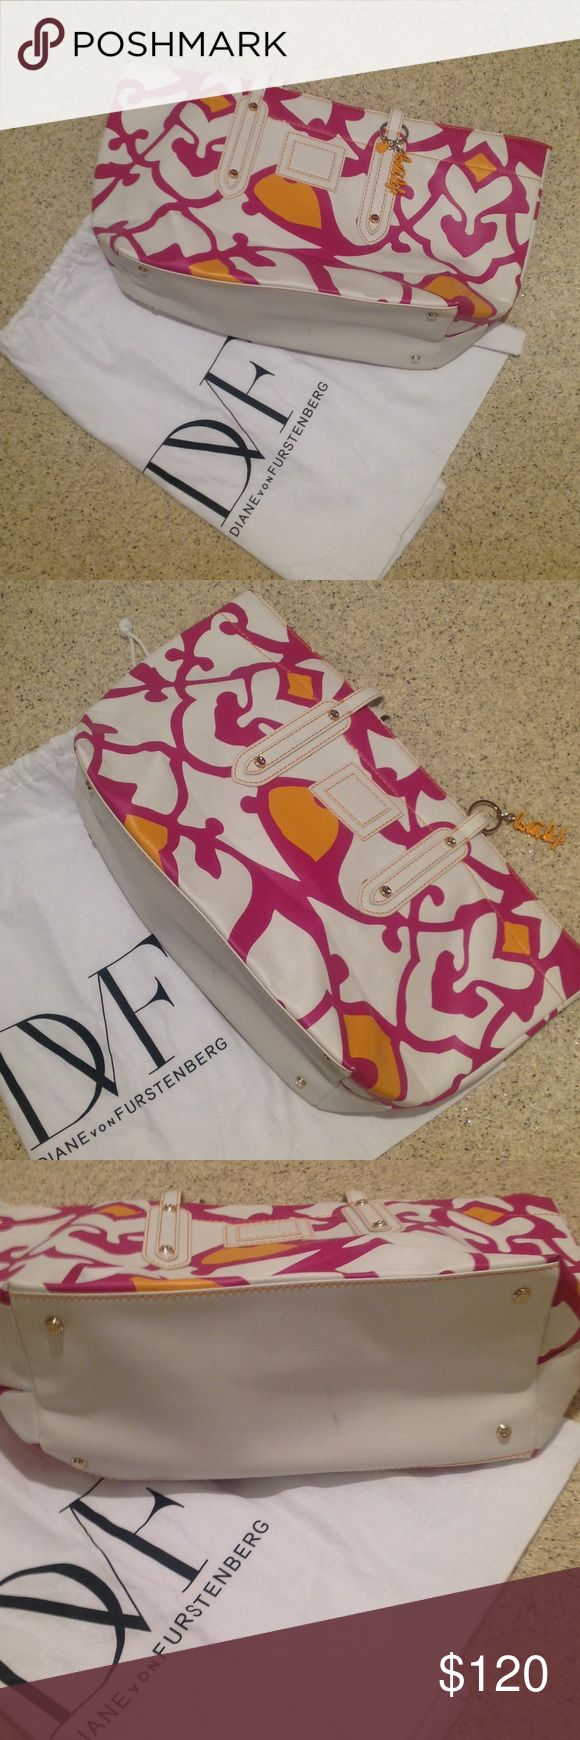 DVF Bag Fun DVF Print bag.  Used for one season. Attached love life keychain. Small mark on bottom shown in third picture. Interior has 3 pockets - one is a zippered pocket. Includes original dust bag. Diane von Furstenberg Bags